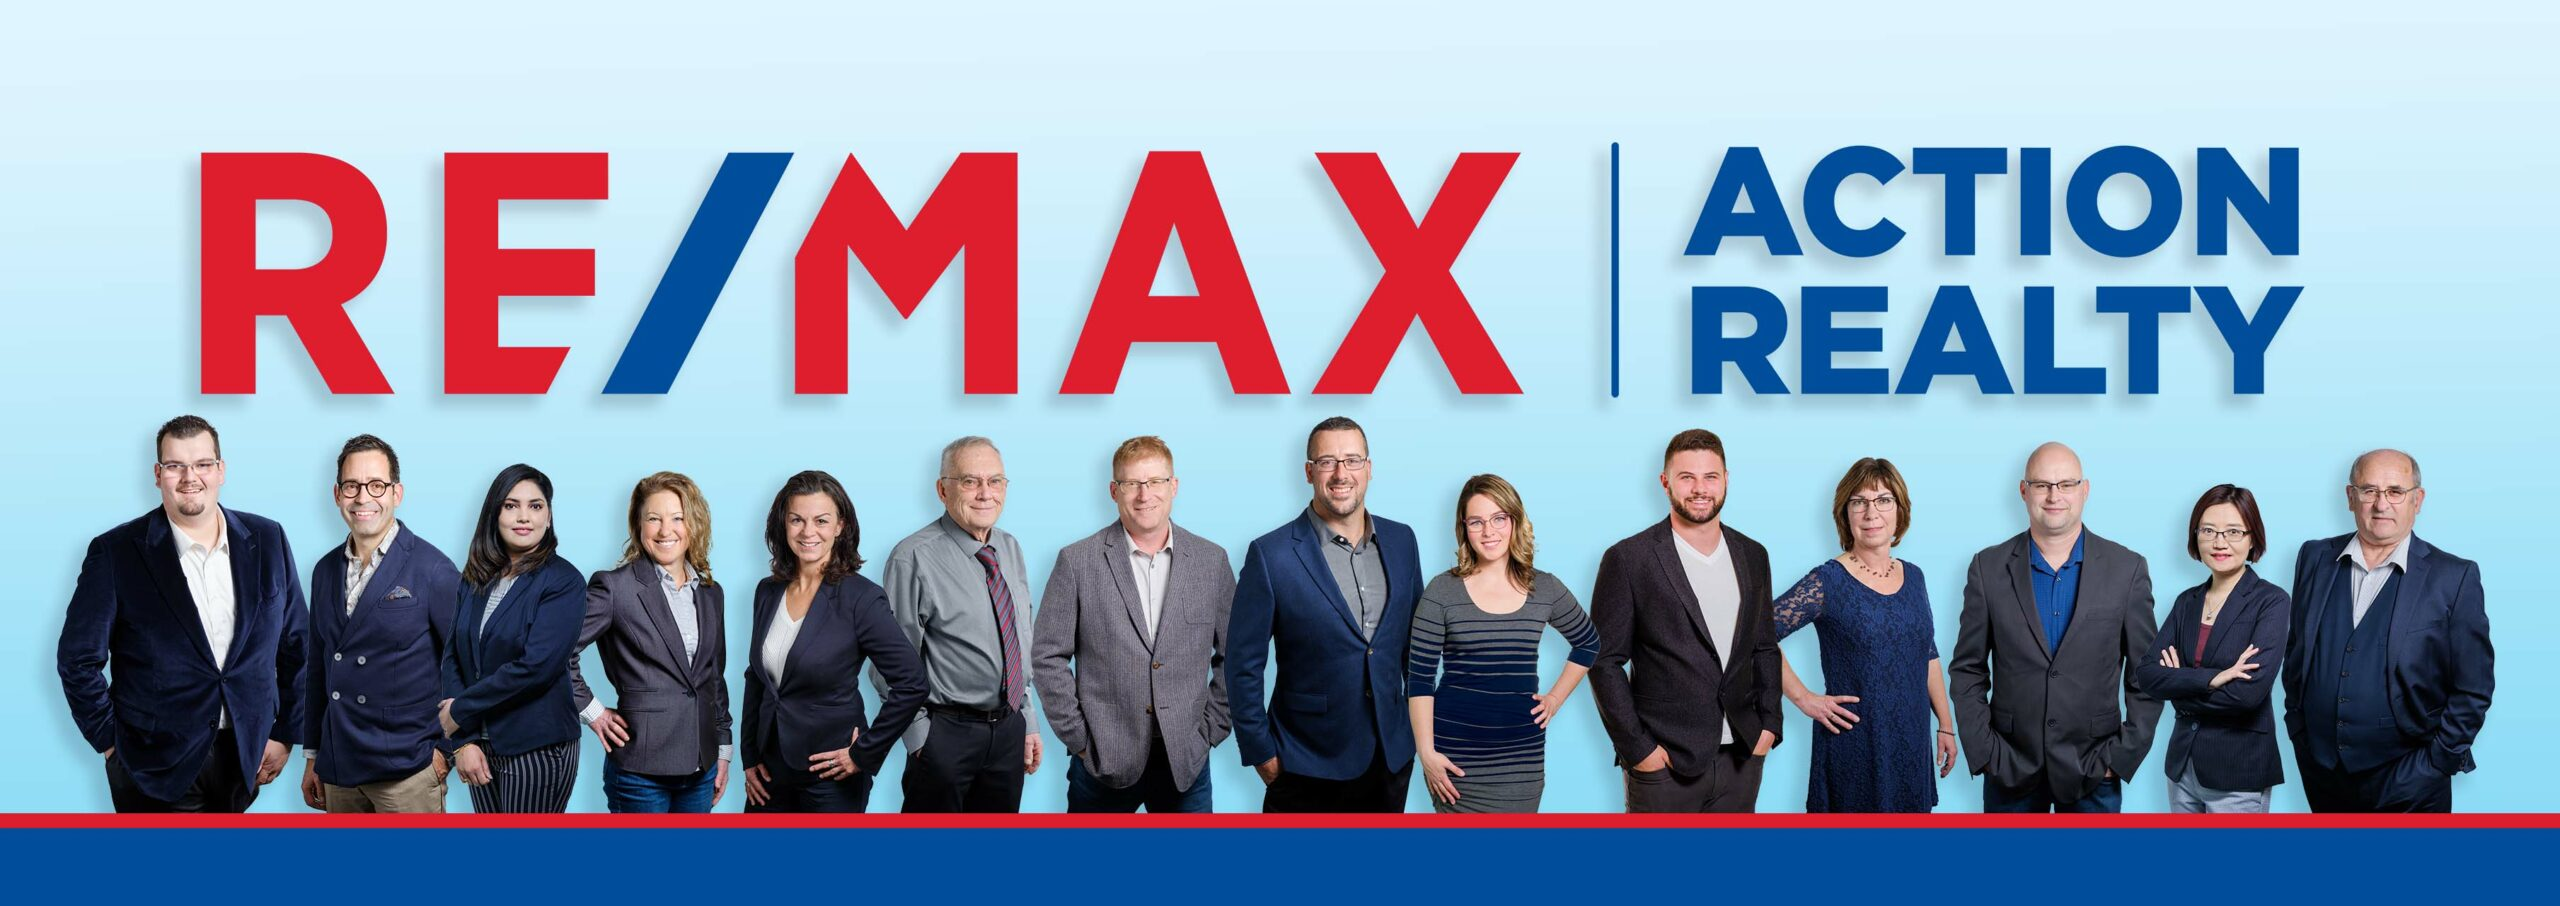 RE/MAX Action Realty Team